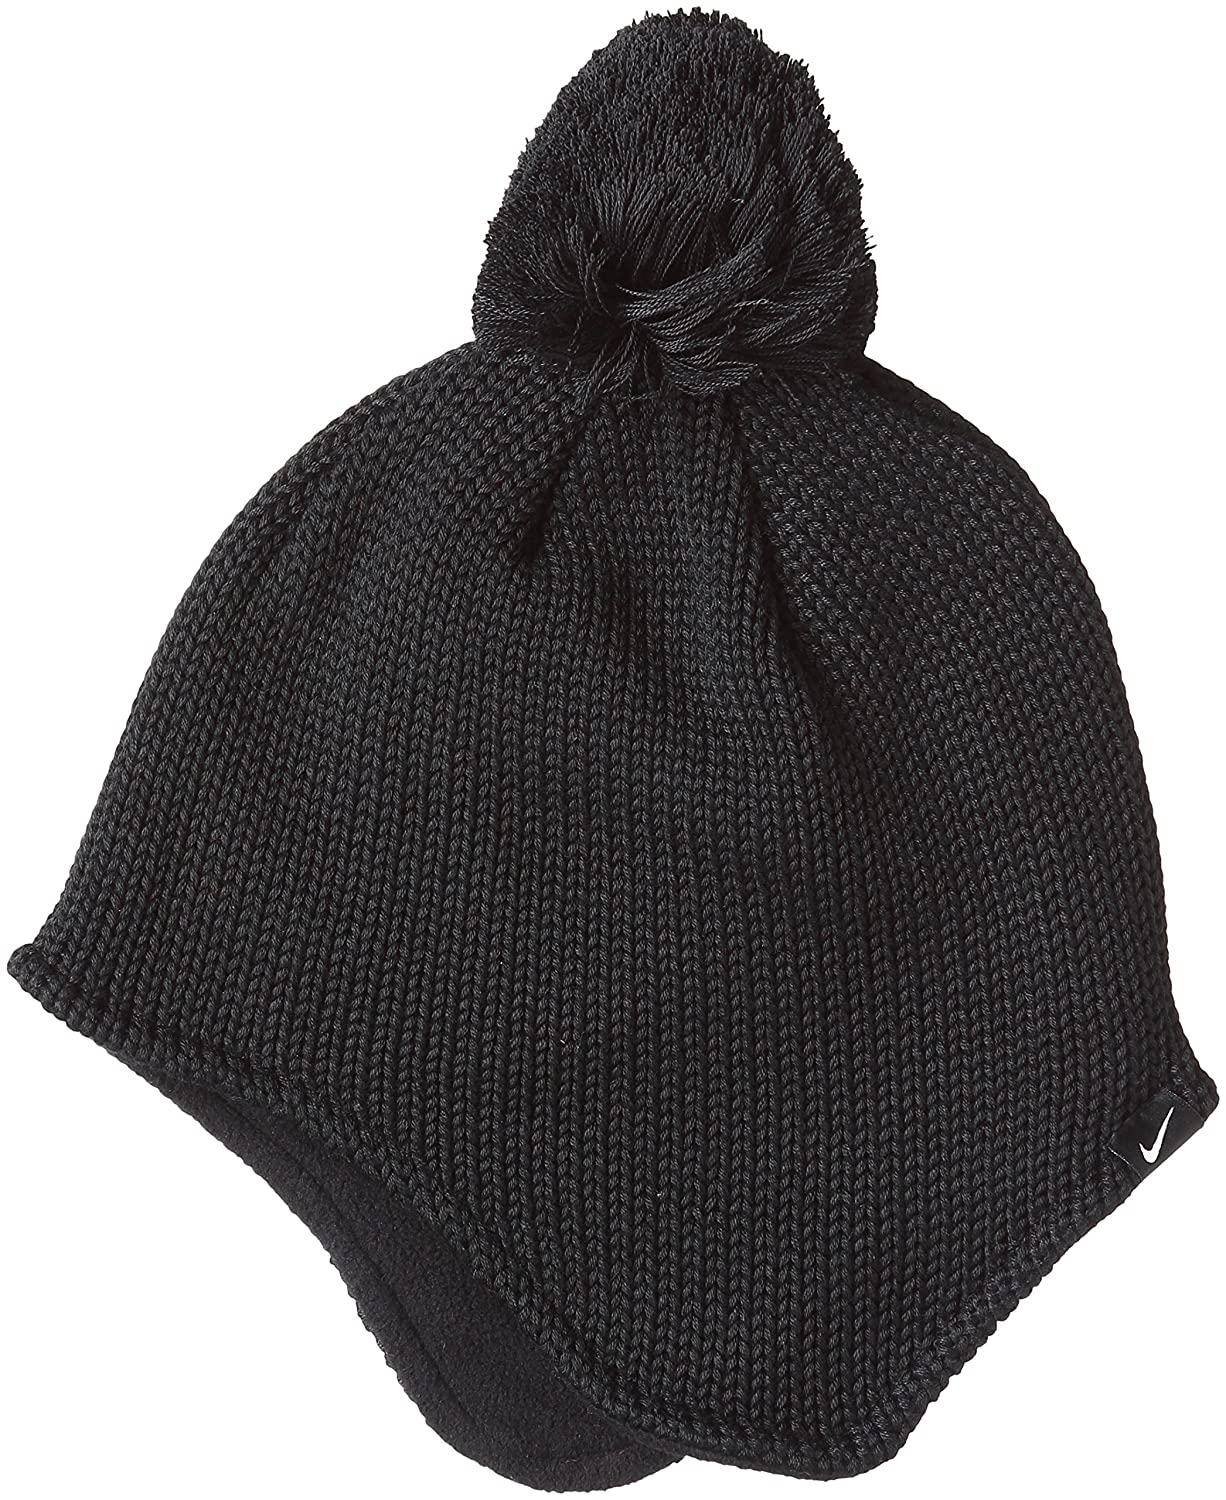 d66ed636 NEW Nike Women's Pom Pom Black Winter Knit Beanie/Hat: Amazon.ca: Sports &  Outdoors